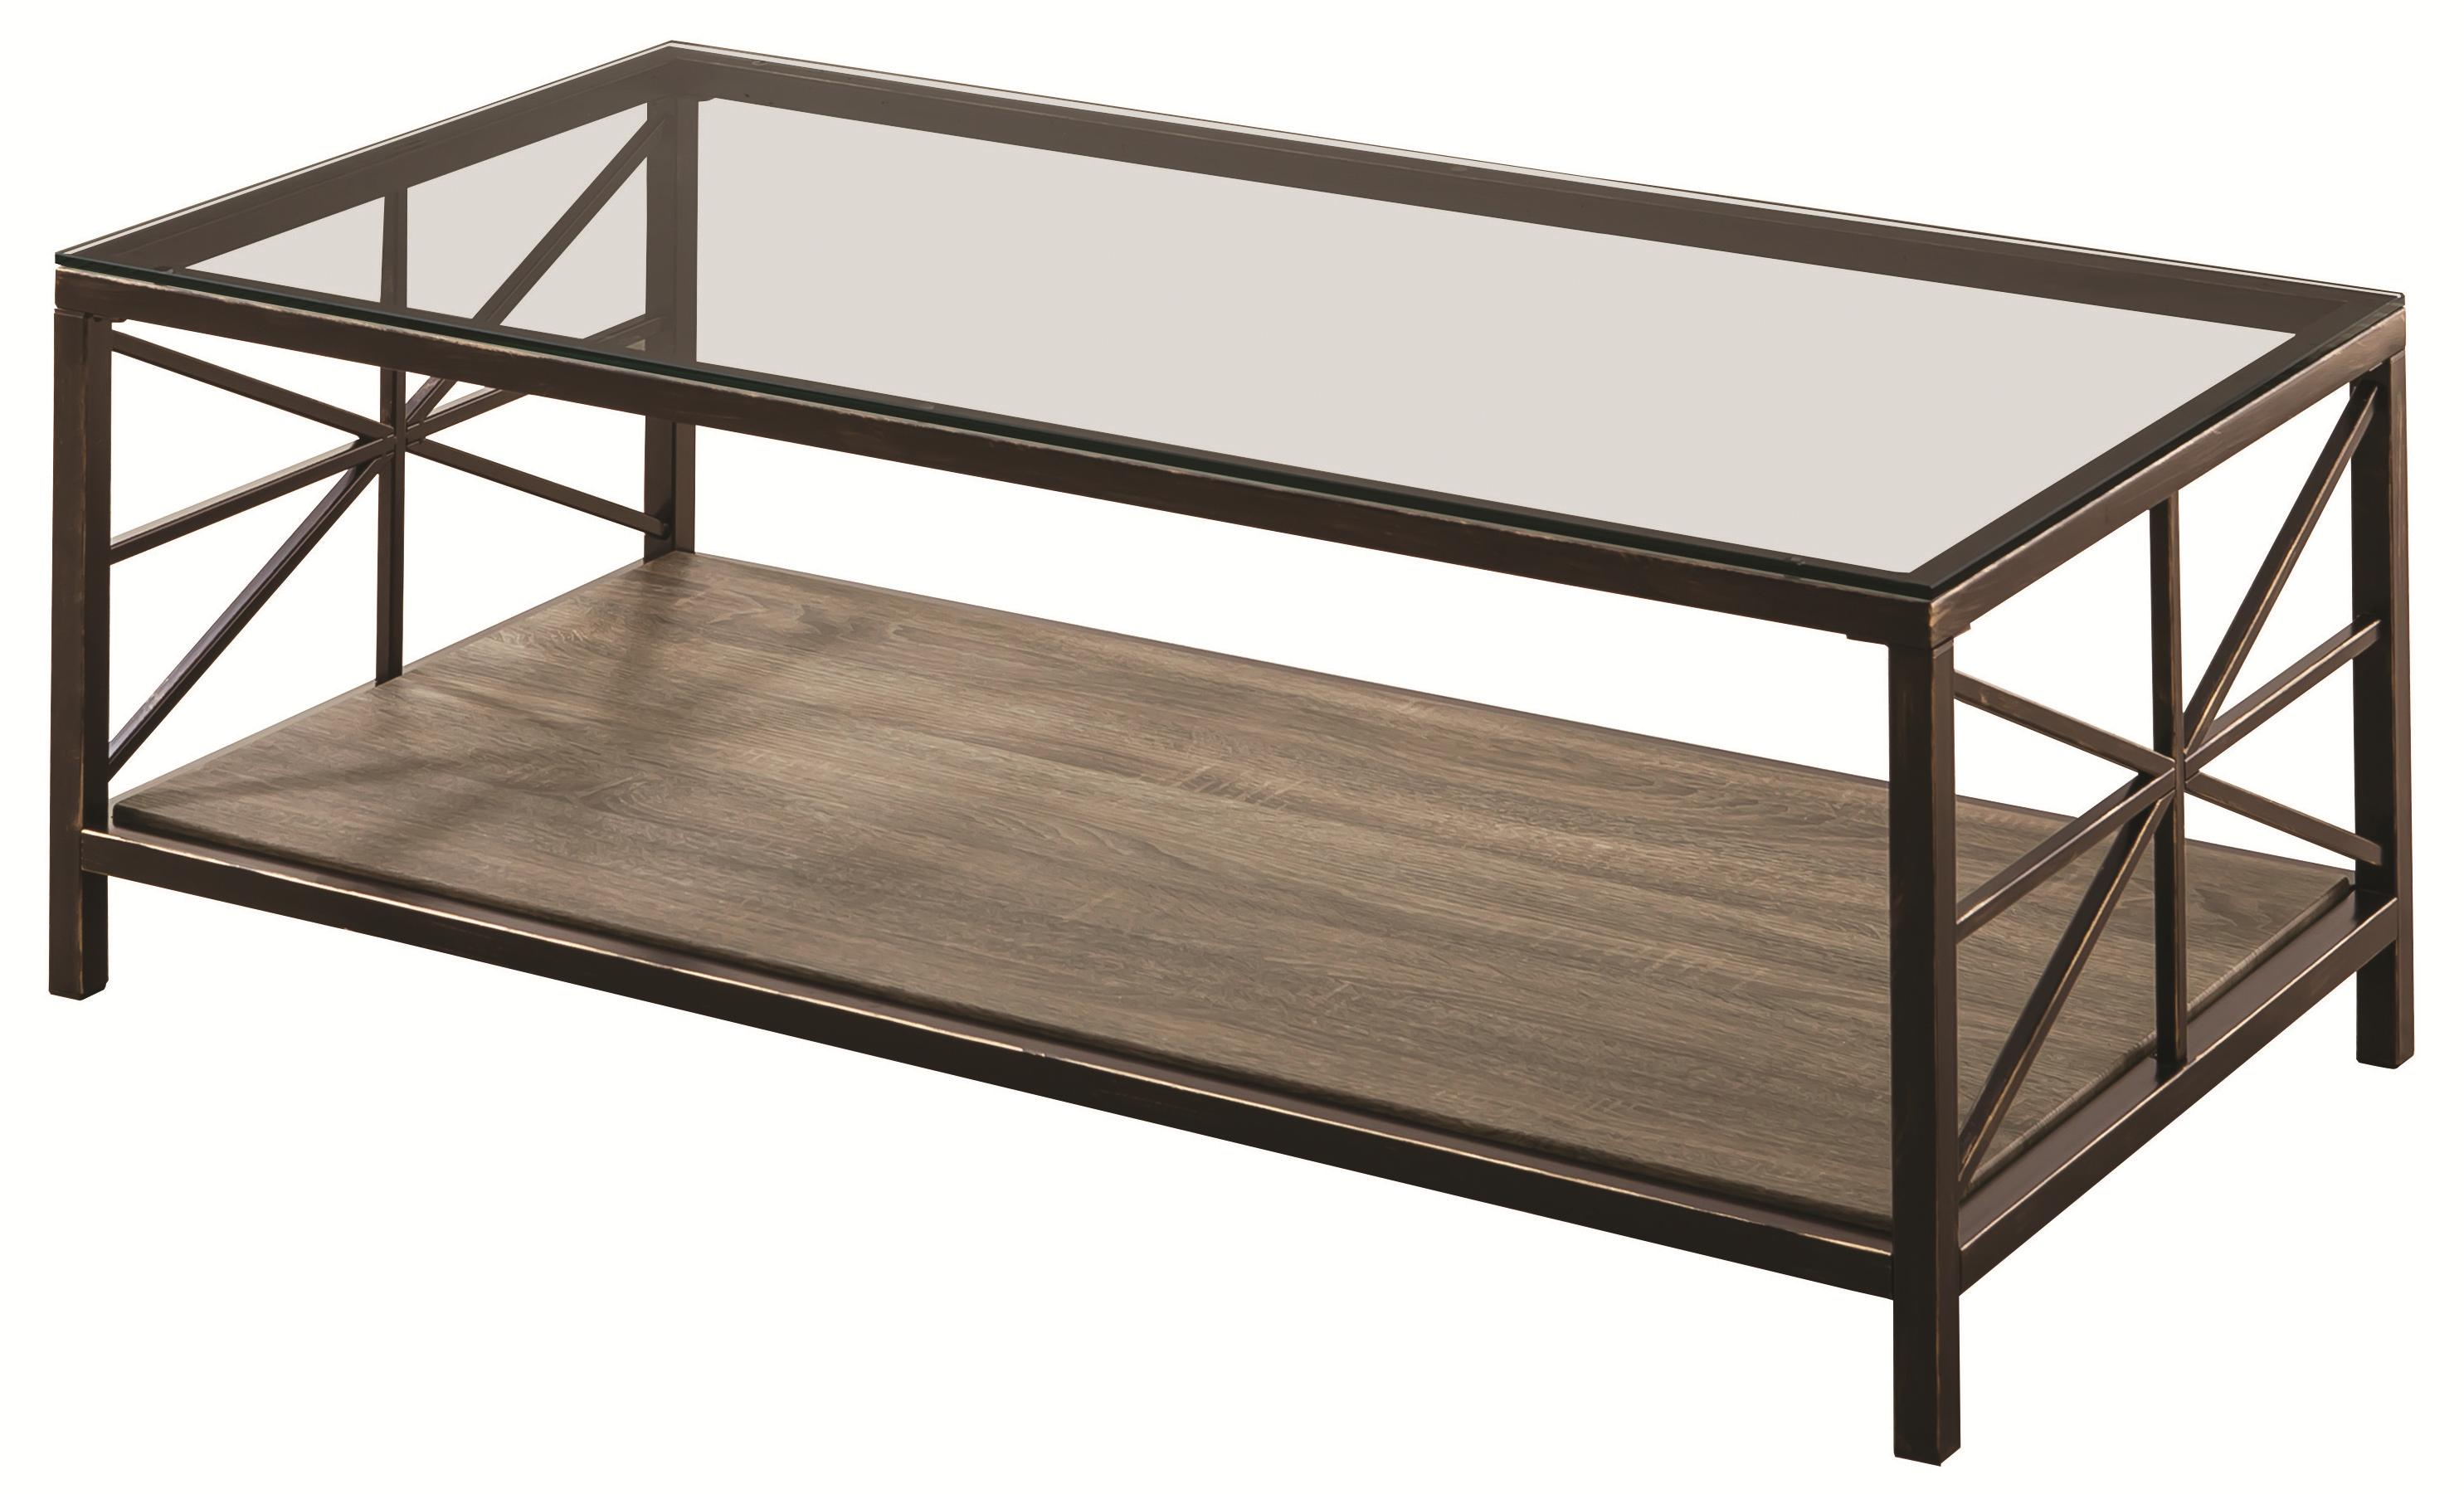 Coaster Avondale 701398 Rustic Coffee Table With Wood Shelf And Glass Top Dunk Bright